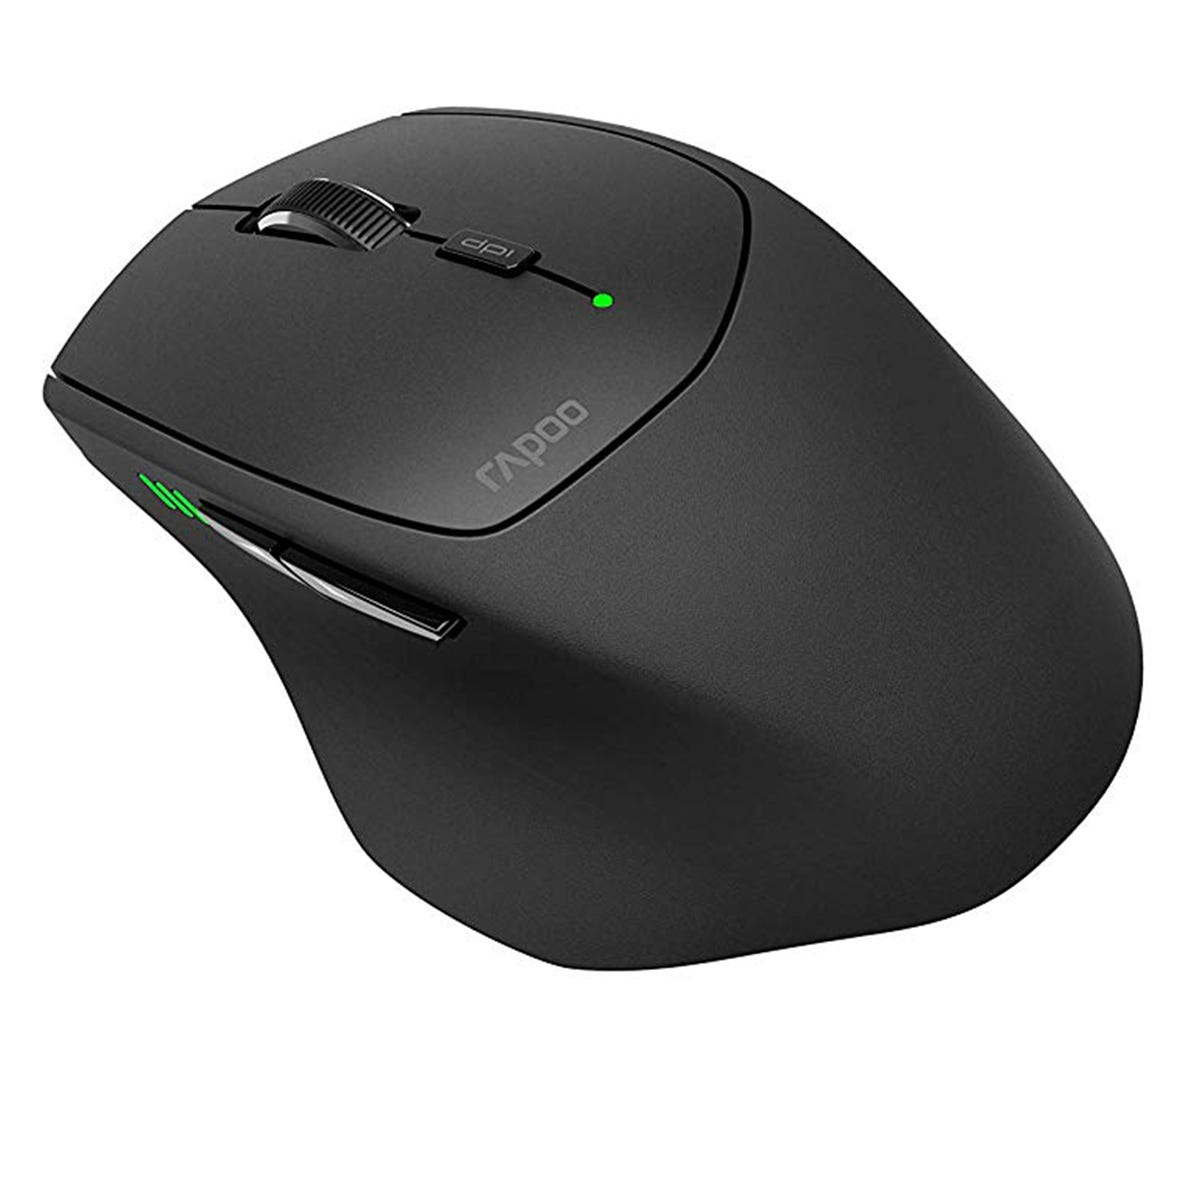 Rapoo MT550 Multi-mode Wireless Optical Mouse - Black